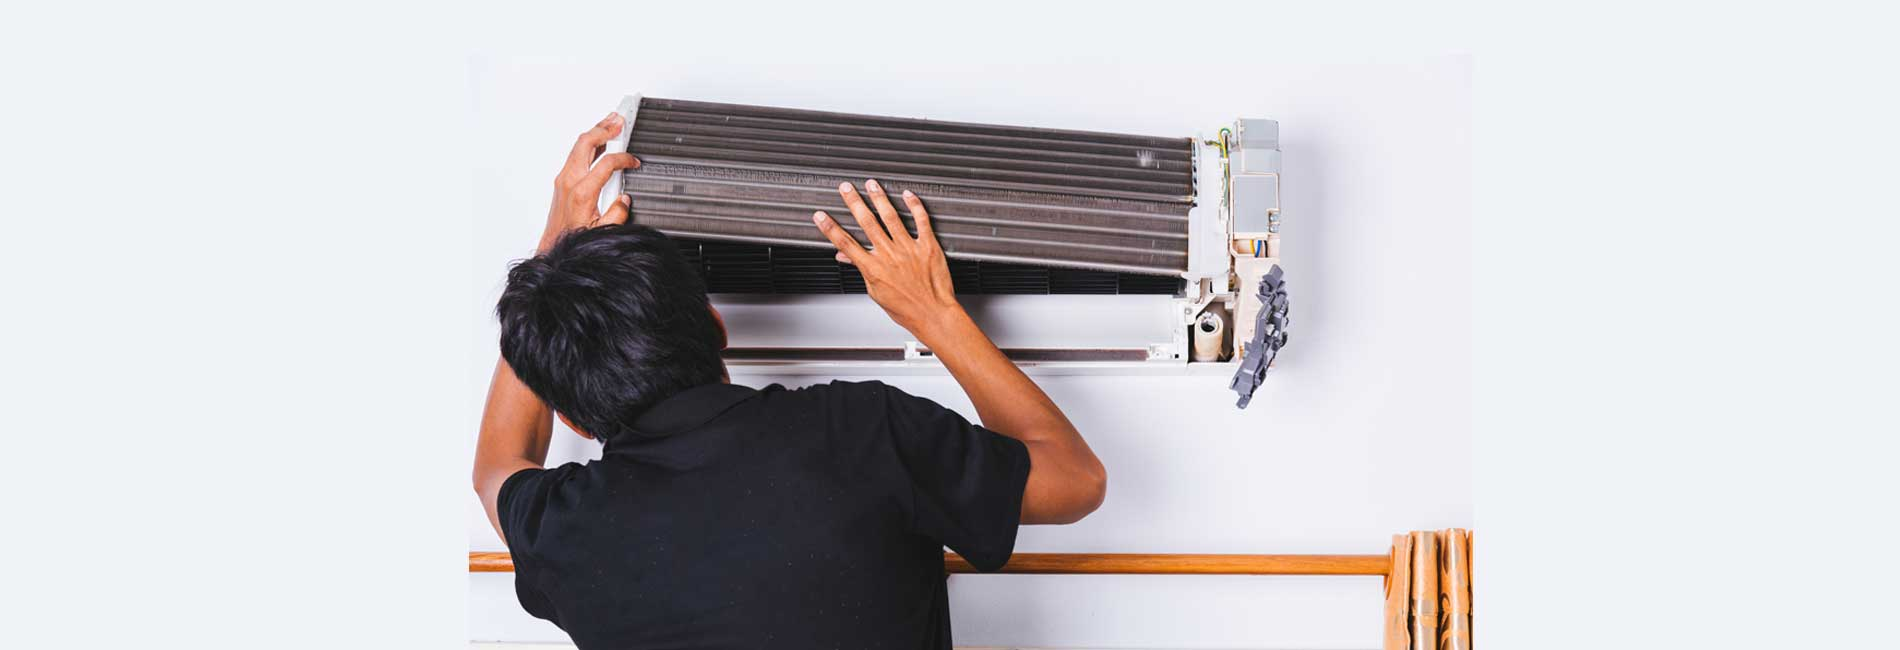 Hitachi AC Installation in Rajakilpakkam